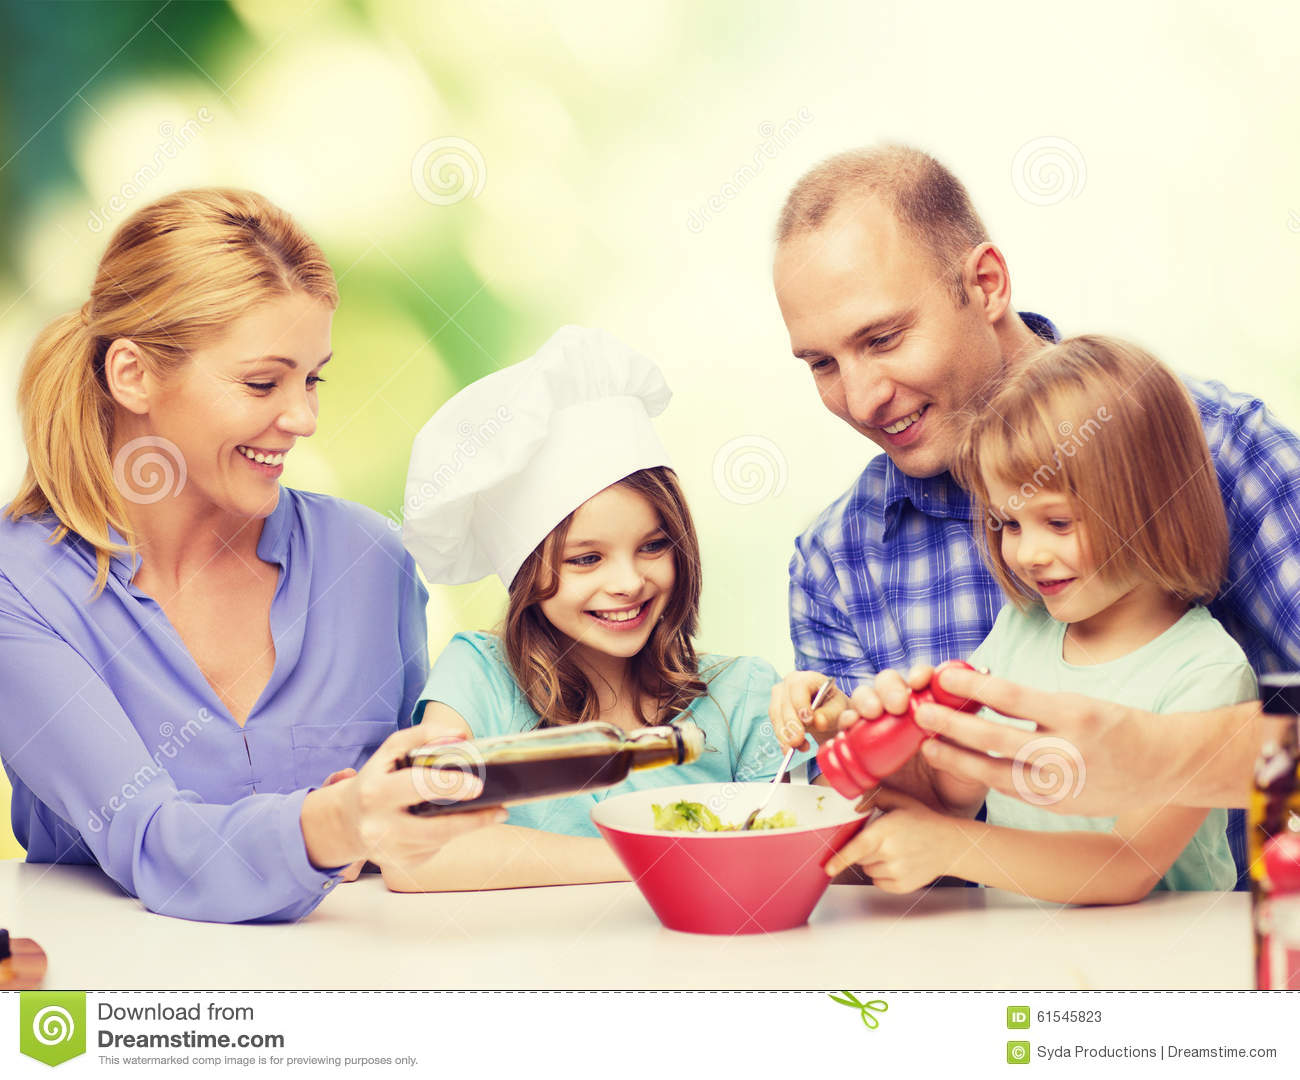 Kids Eating Objects Clipart